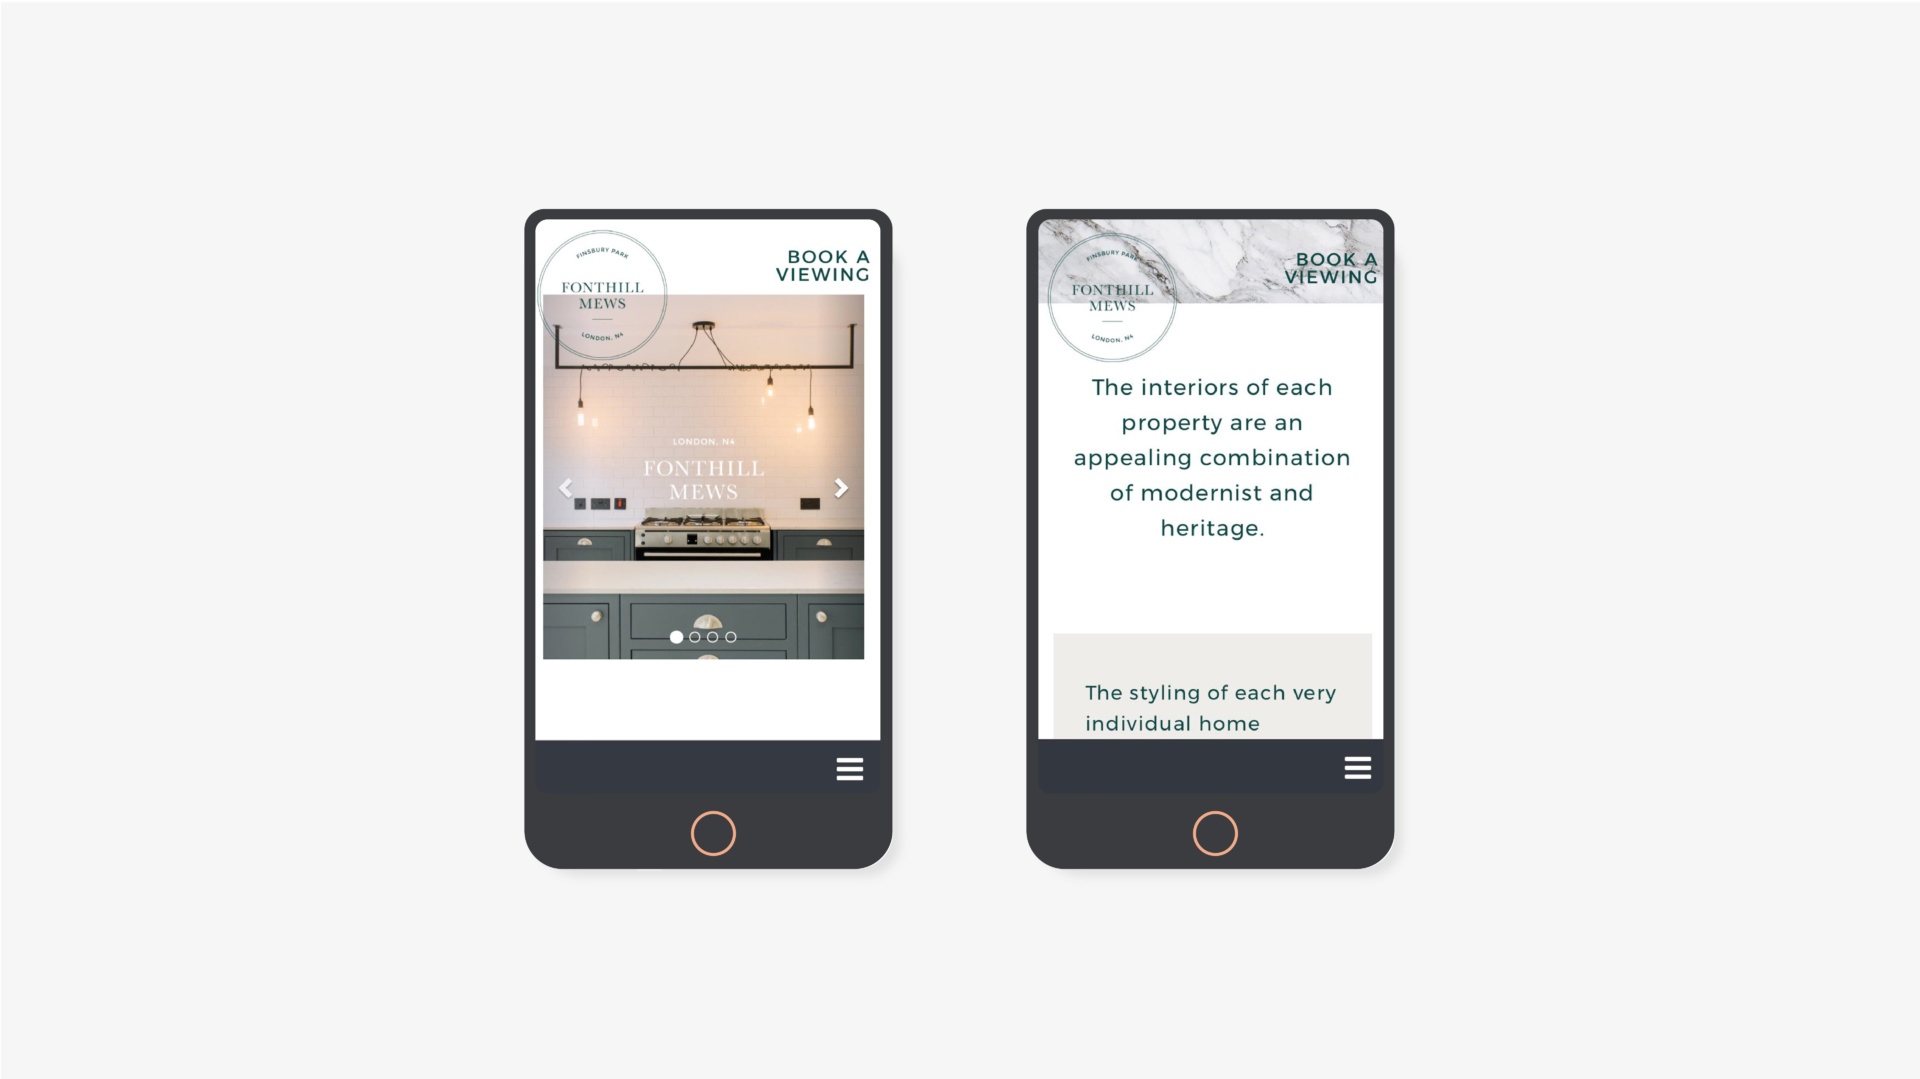 Two website pages presented on phones, for Fonthill Mews, Finsbury Park properties. Graphic design by Barefaced Studios, design agency based in Islington, North London.